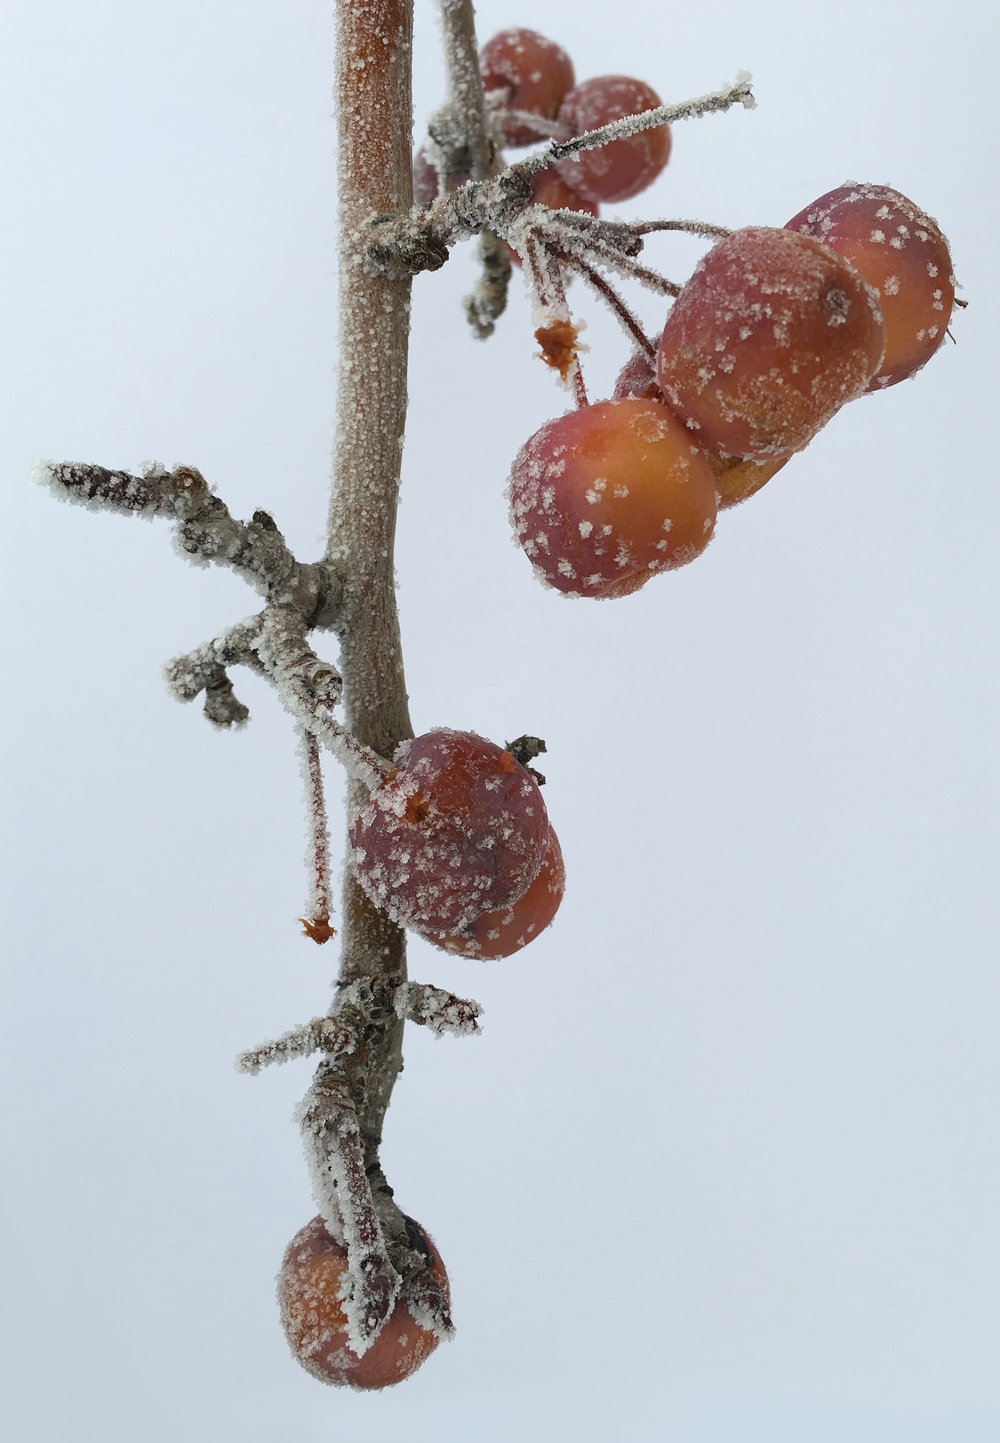 4 WINTER Frozen Crabapples copy.jpg